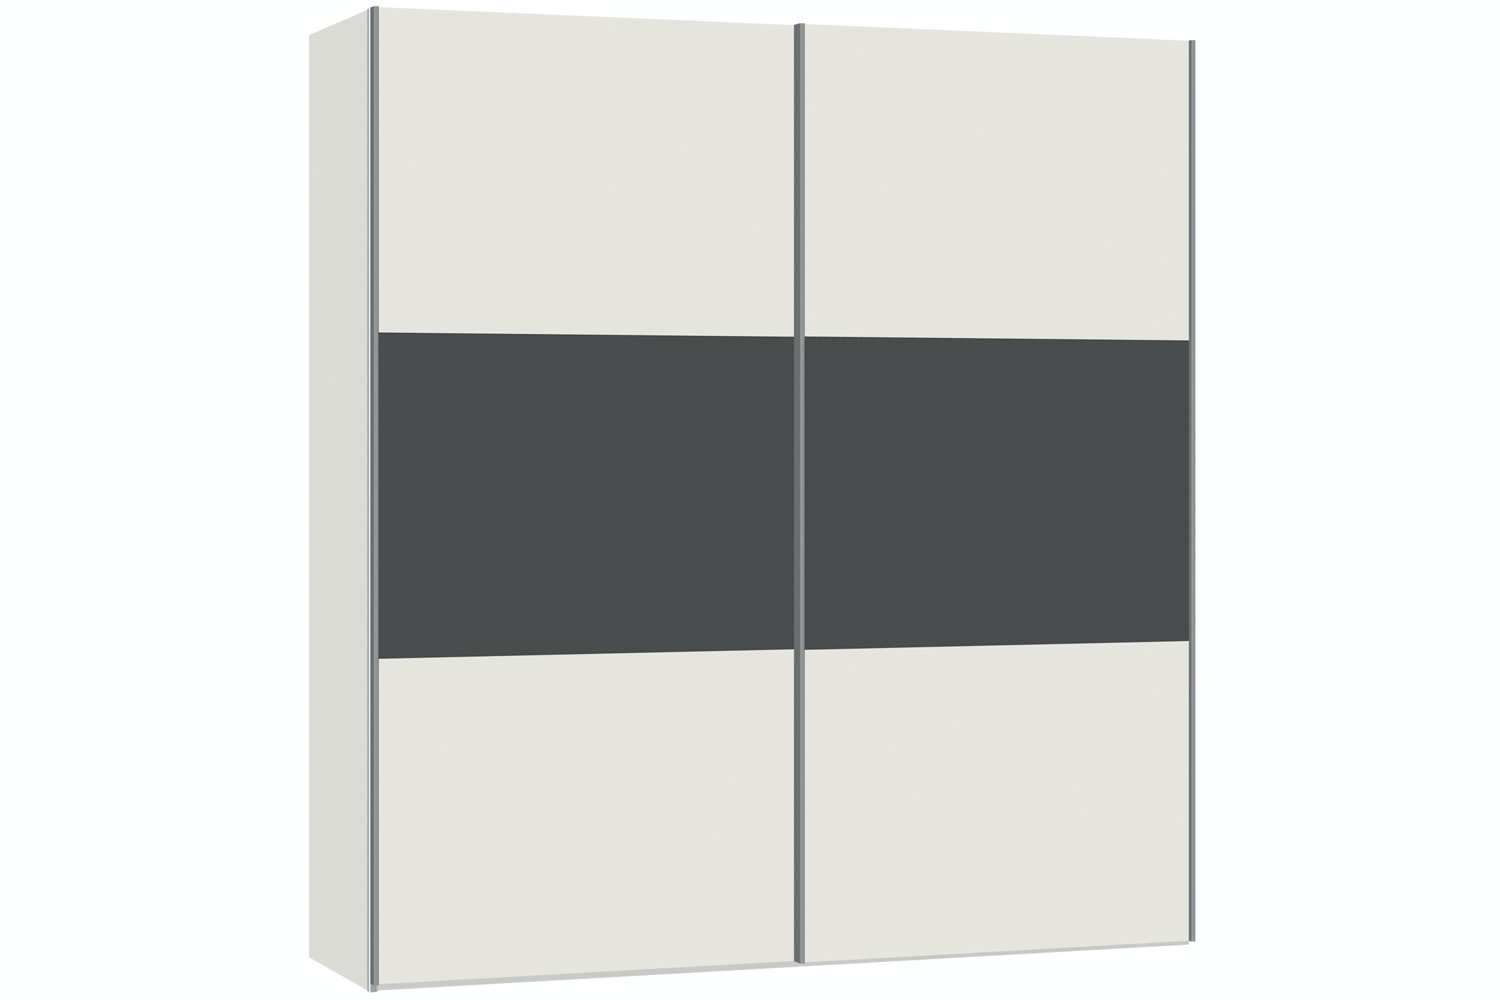 Jutzler Emer Slideline 2m Wardrobe | White with Dark Mirror